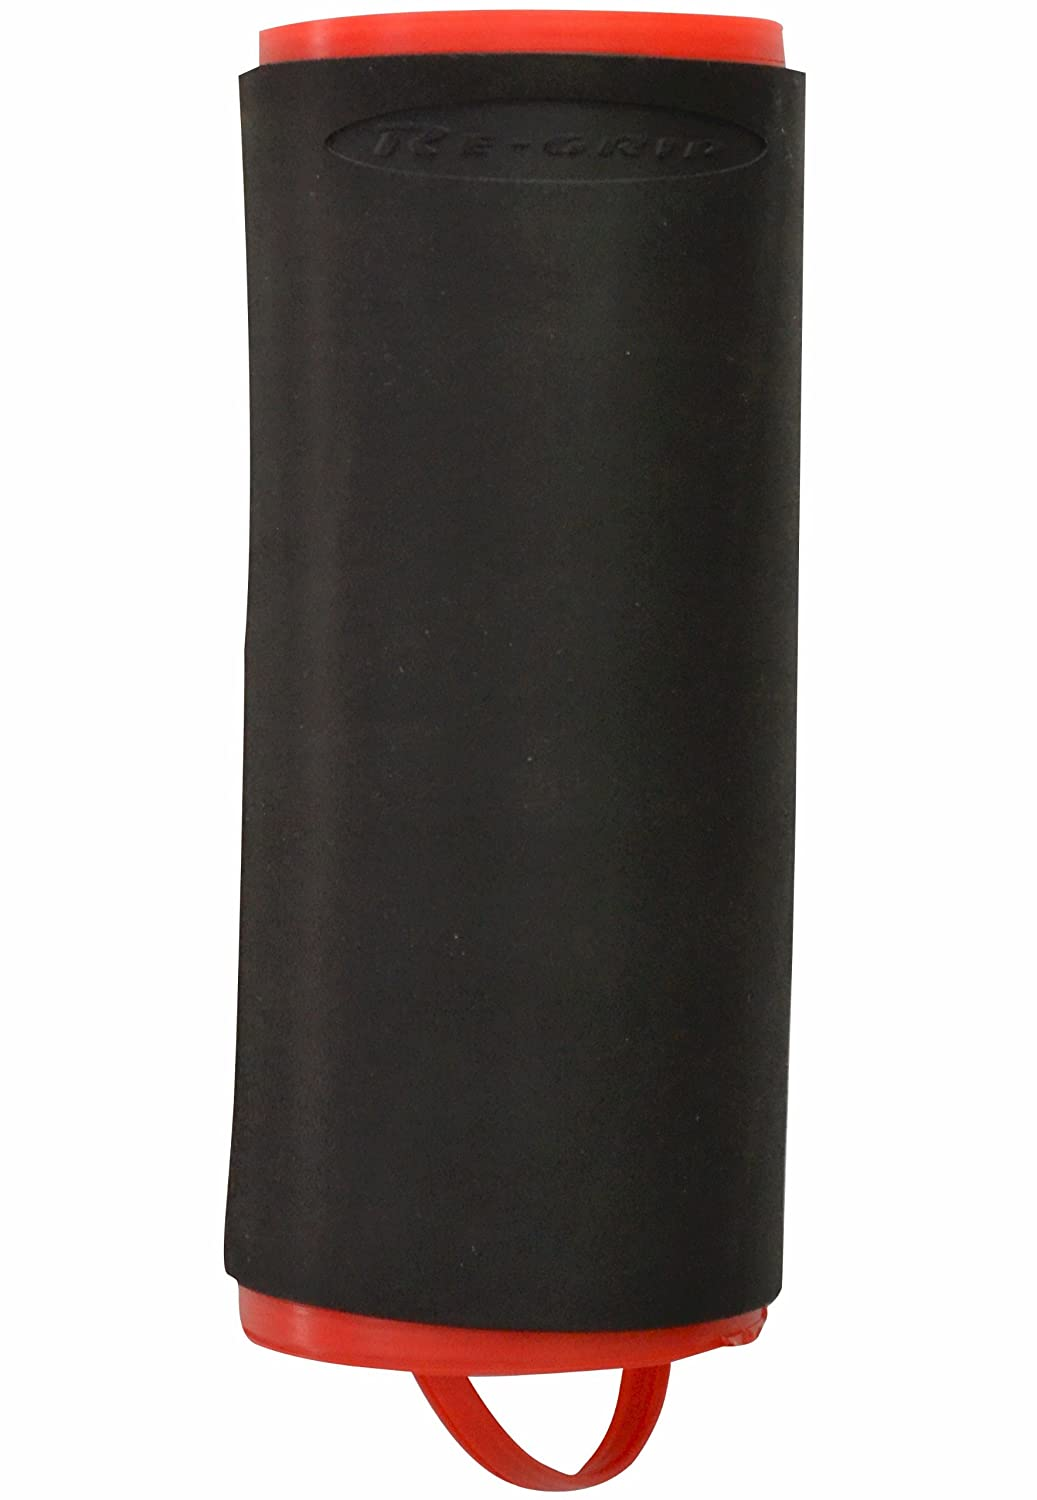 Re-Grip PN61-7 Replacement Handle Grip for Hand and Garden Tools, 0.88 by 1.8-Inch